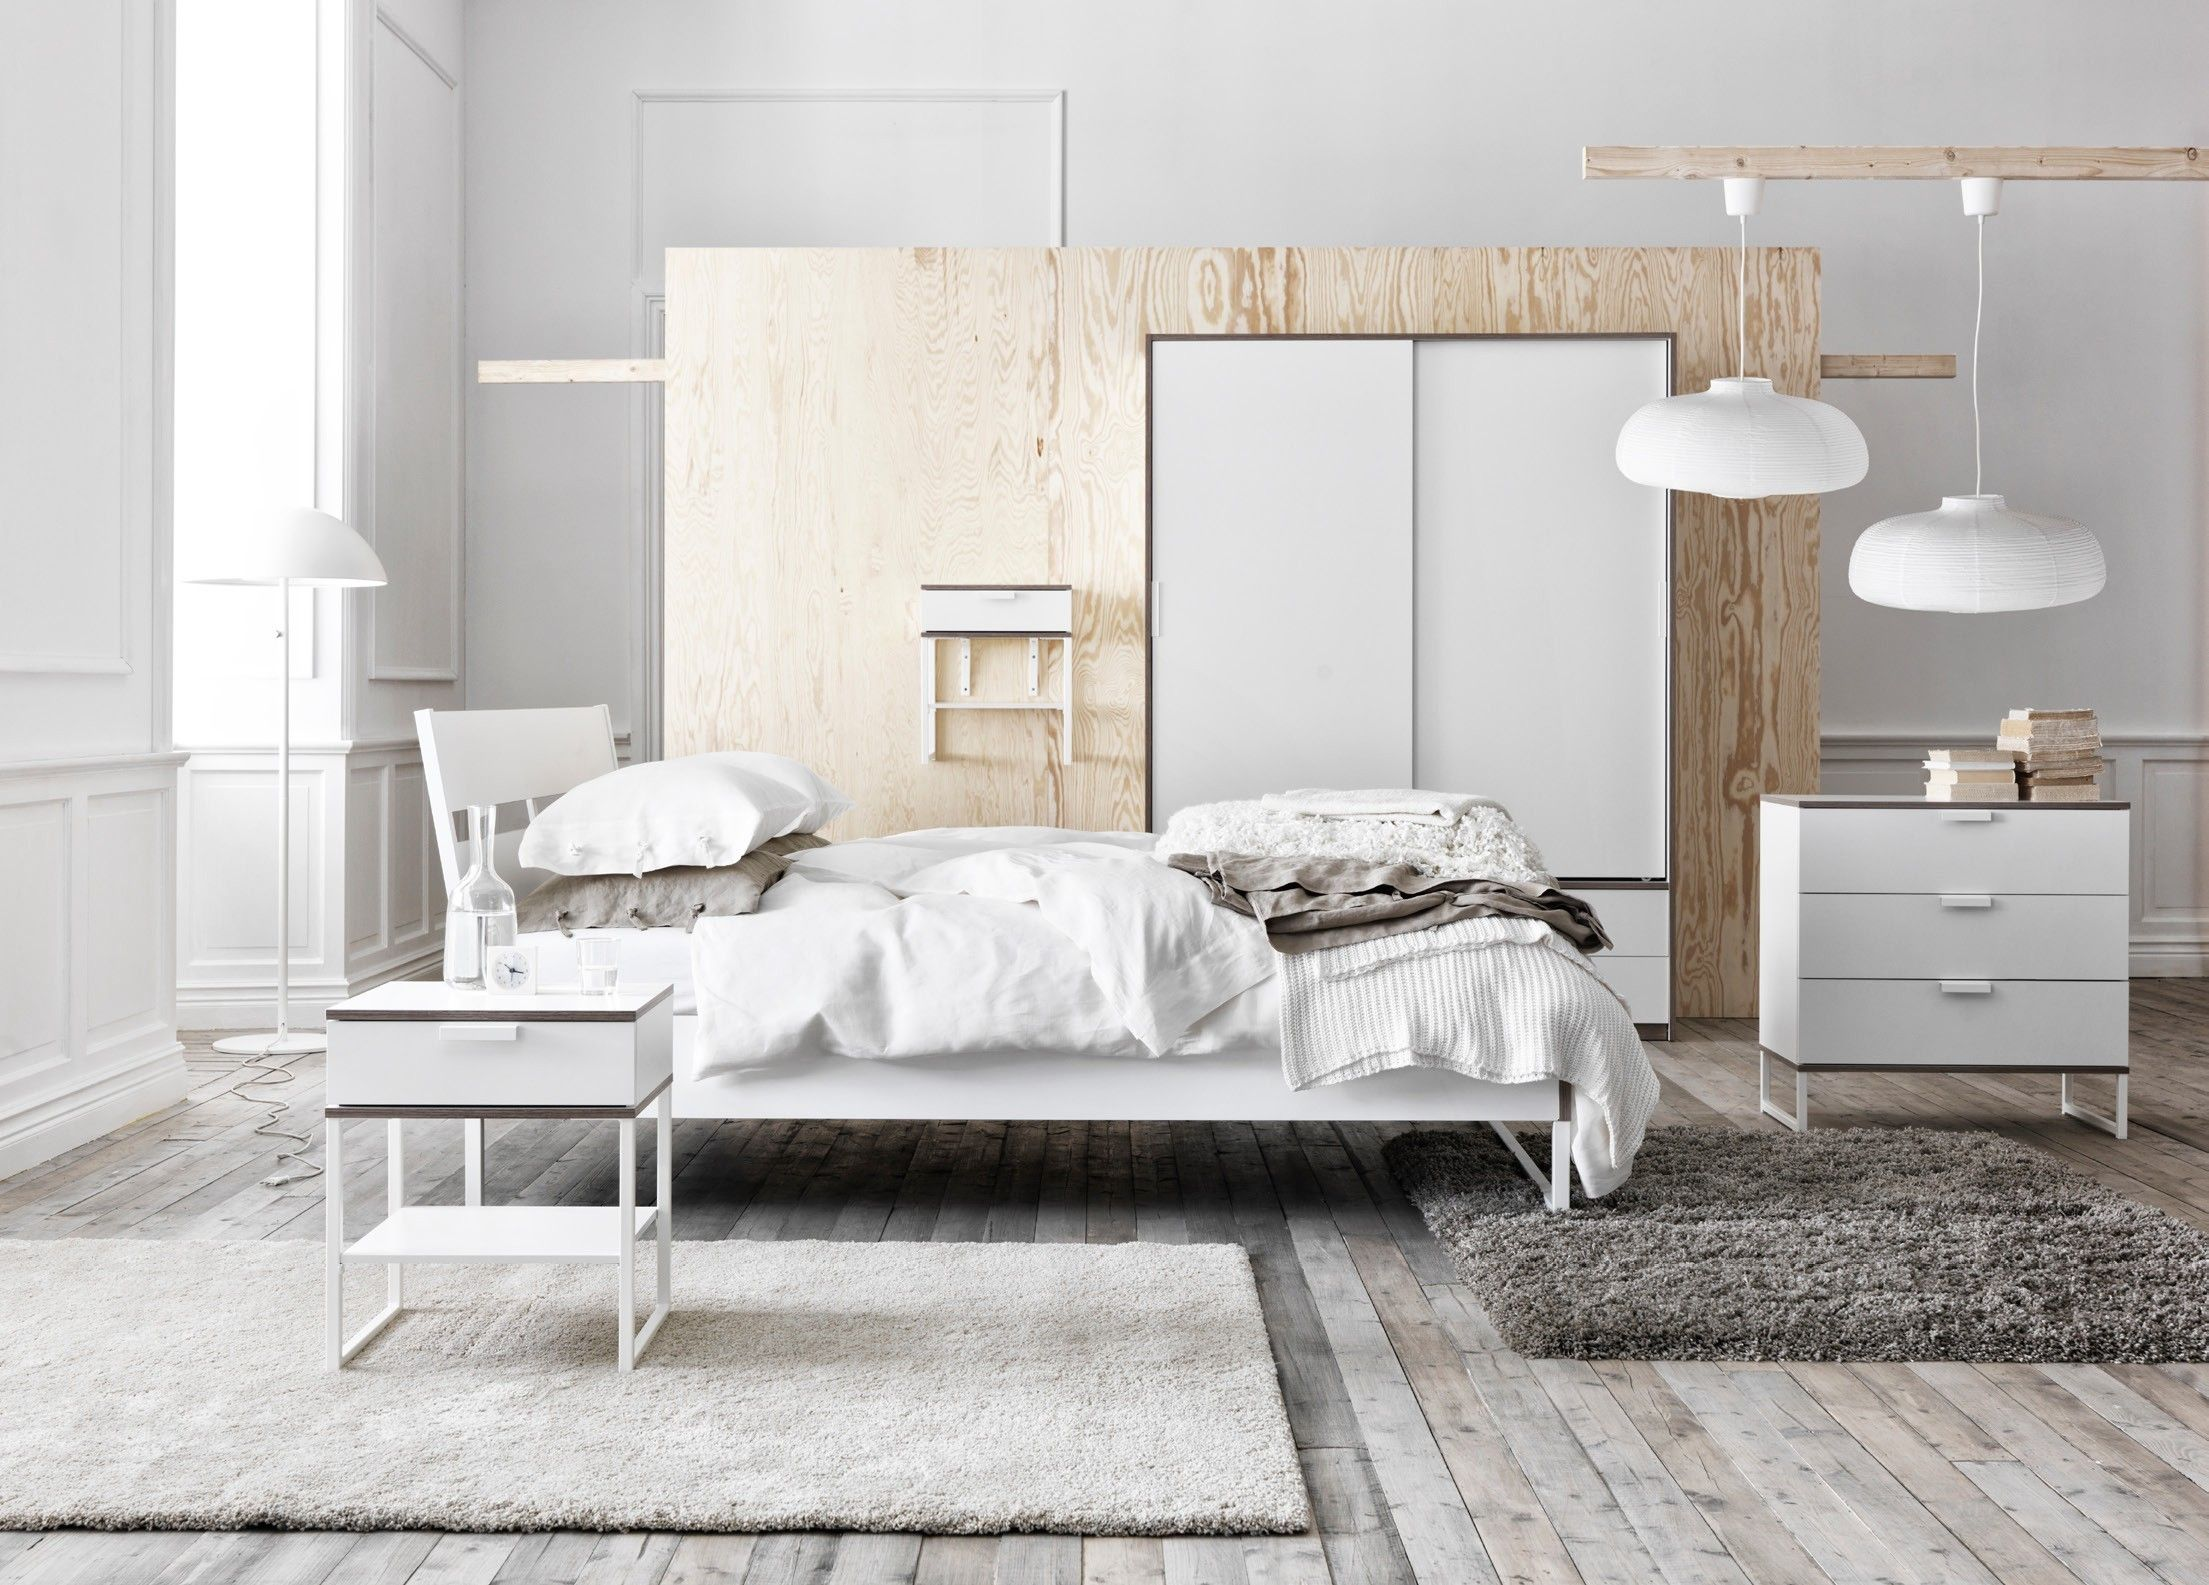 IKEA TRYSIL | Finish ideas | Pinterest | Plywood, Bedrooms and ...